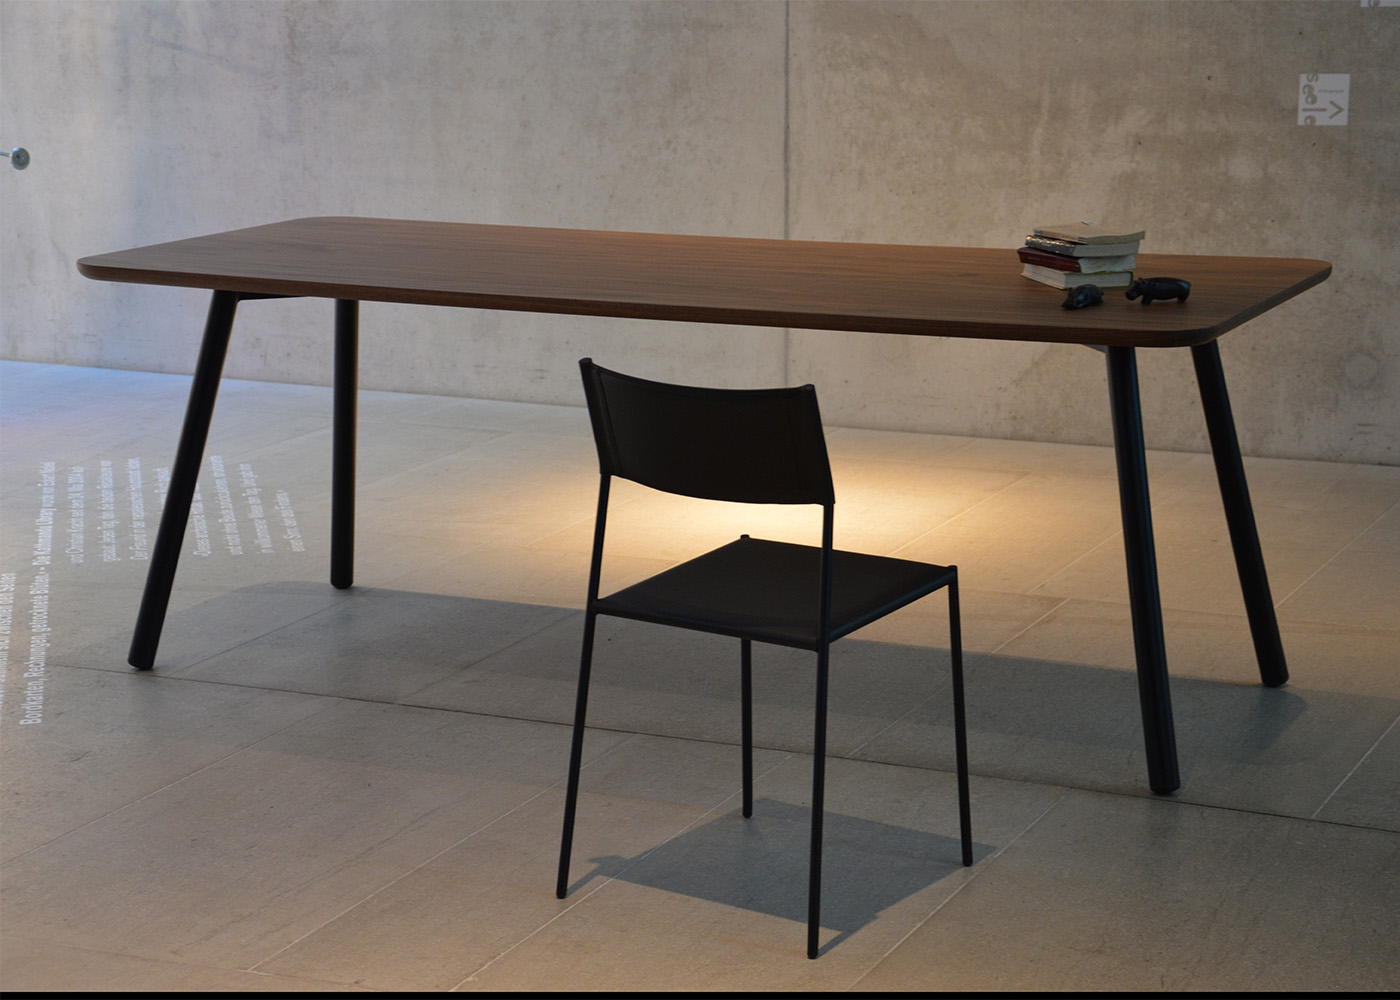 Table de repas en ch ne ou noyer au design sobre et for Table bureau bois